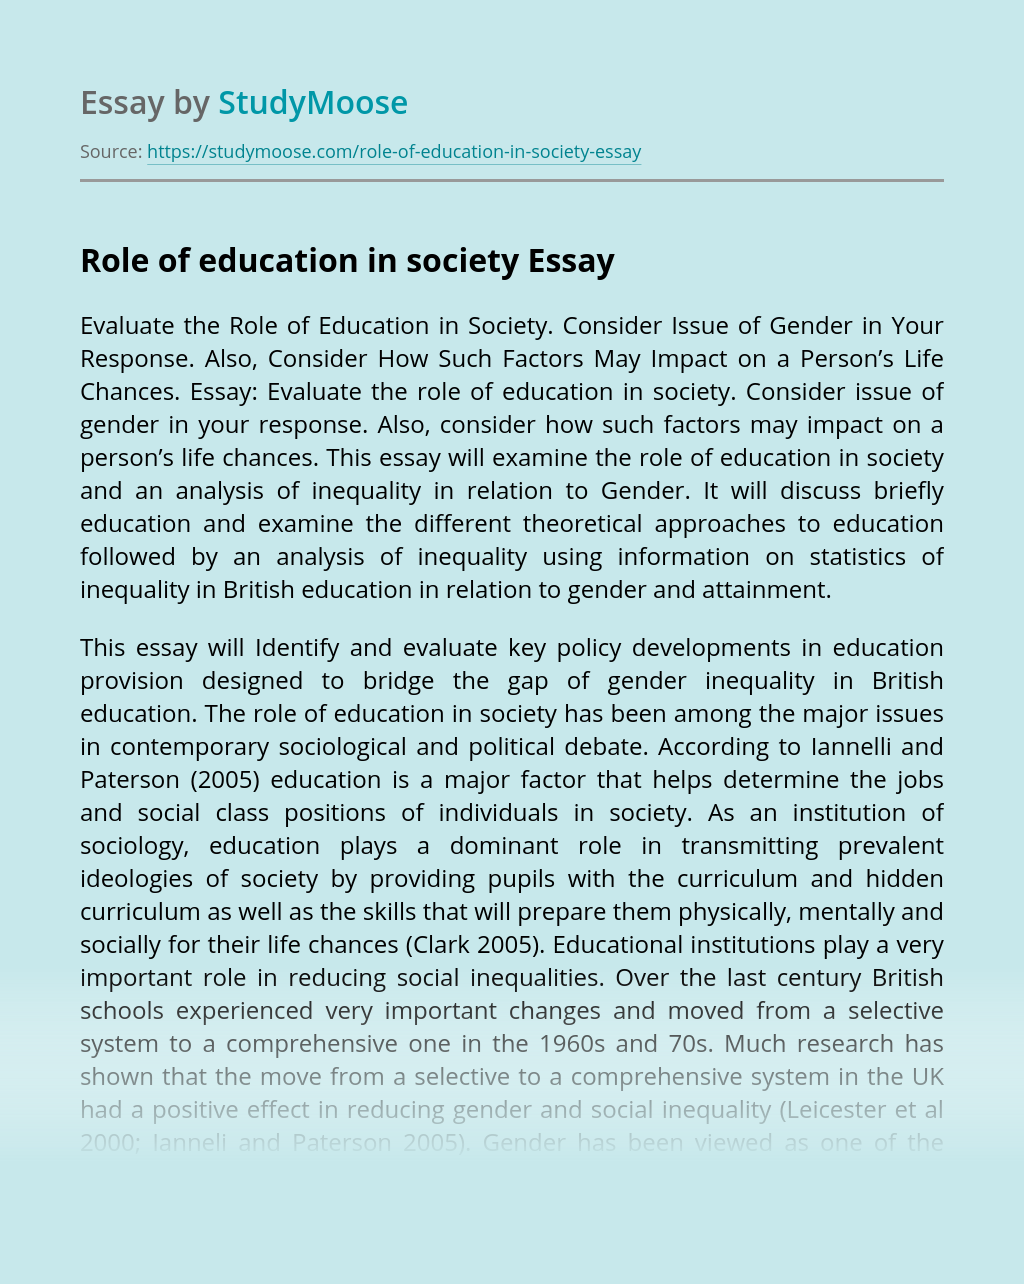 Role of education in society